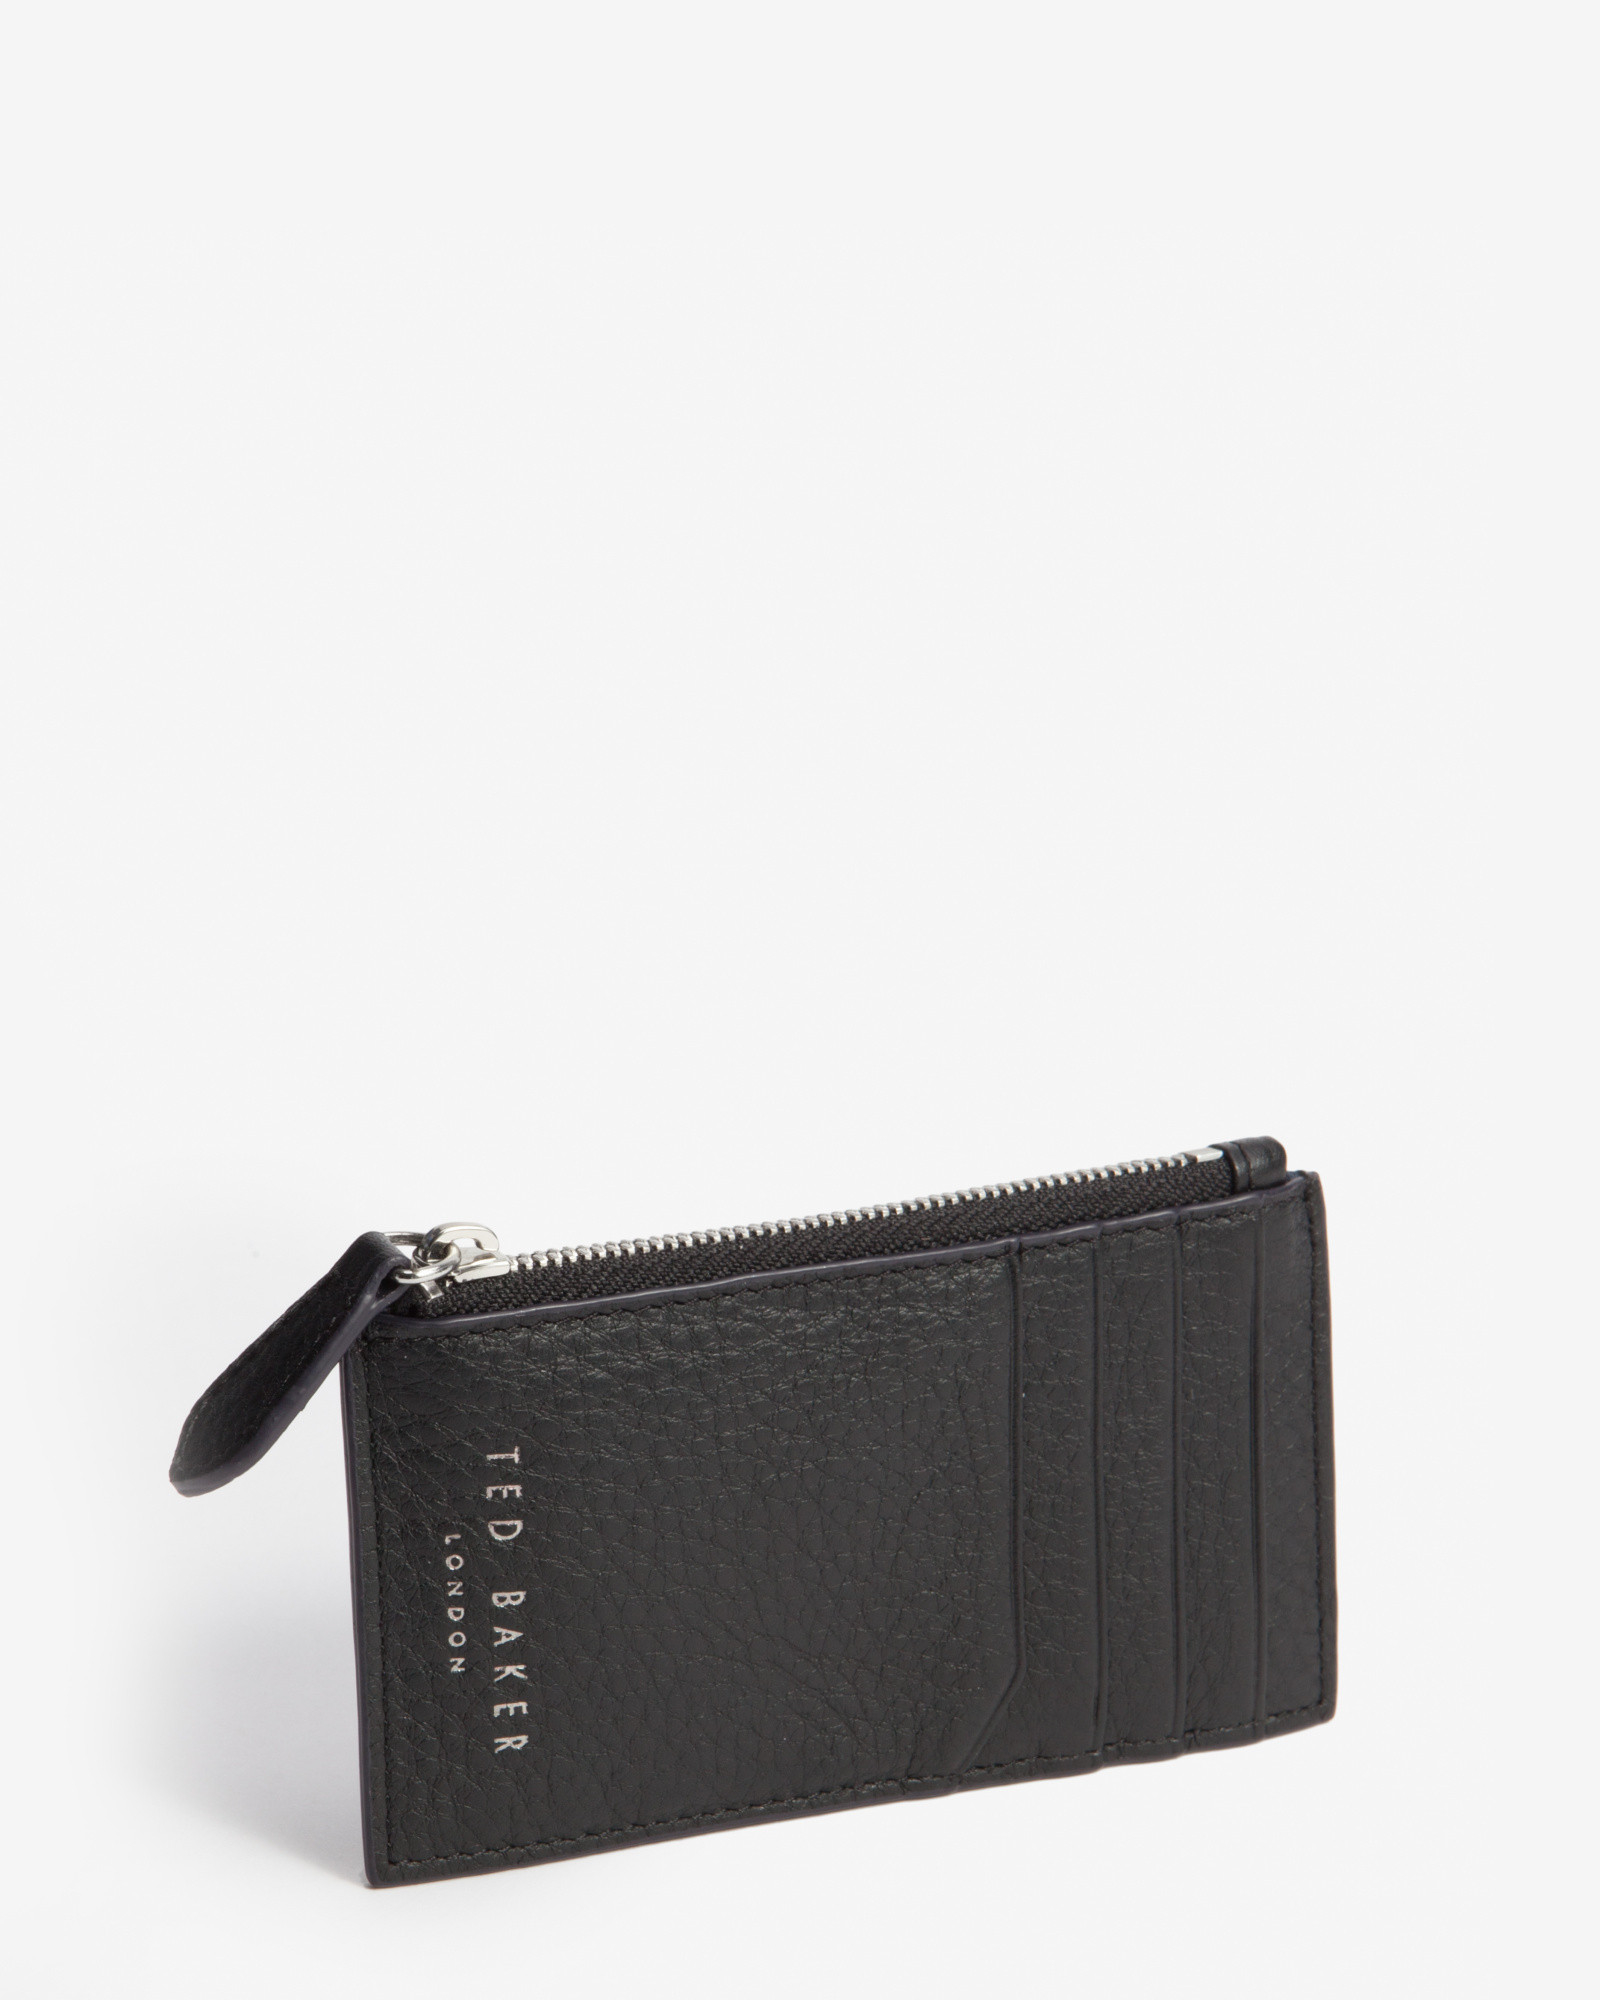 9a3554318fa ted-baker-black-zipped-leather-card-wallet-product-1-442097503-normal.jpeg